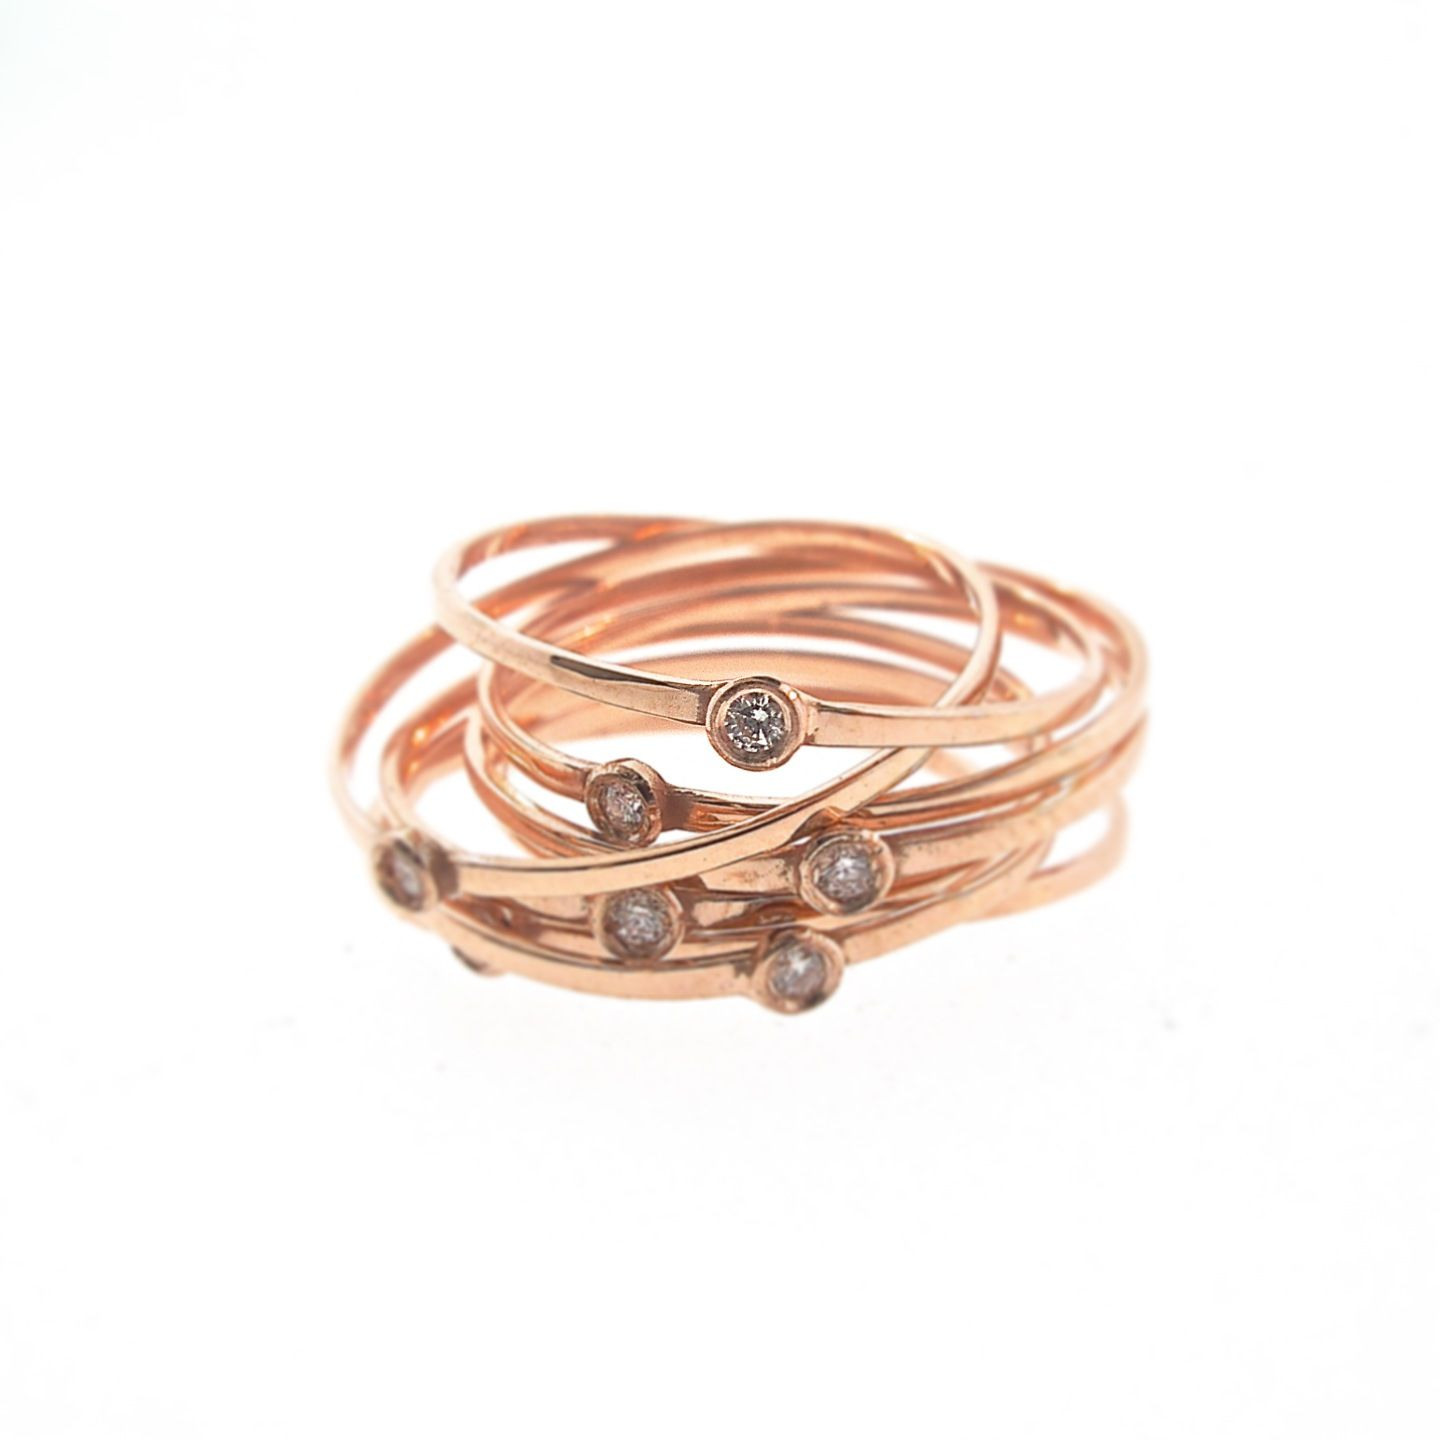 Extra Thin Bands With Diamonds By Phoenix Roze